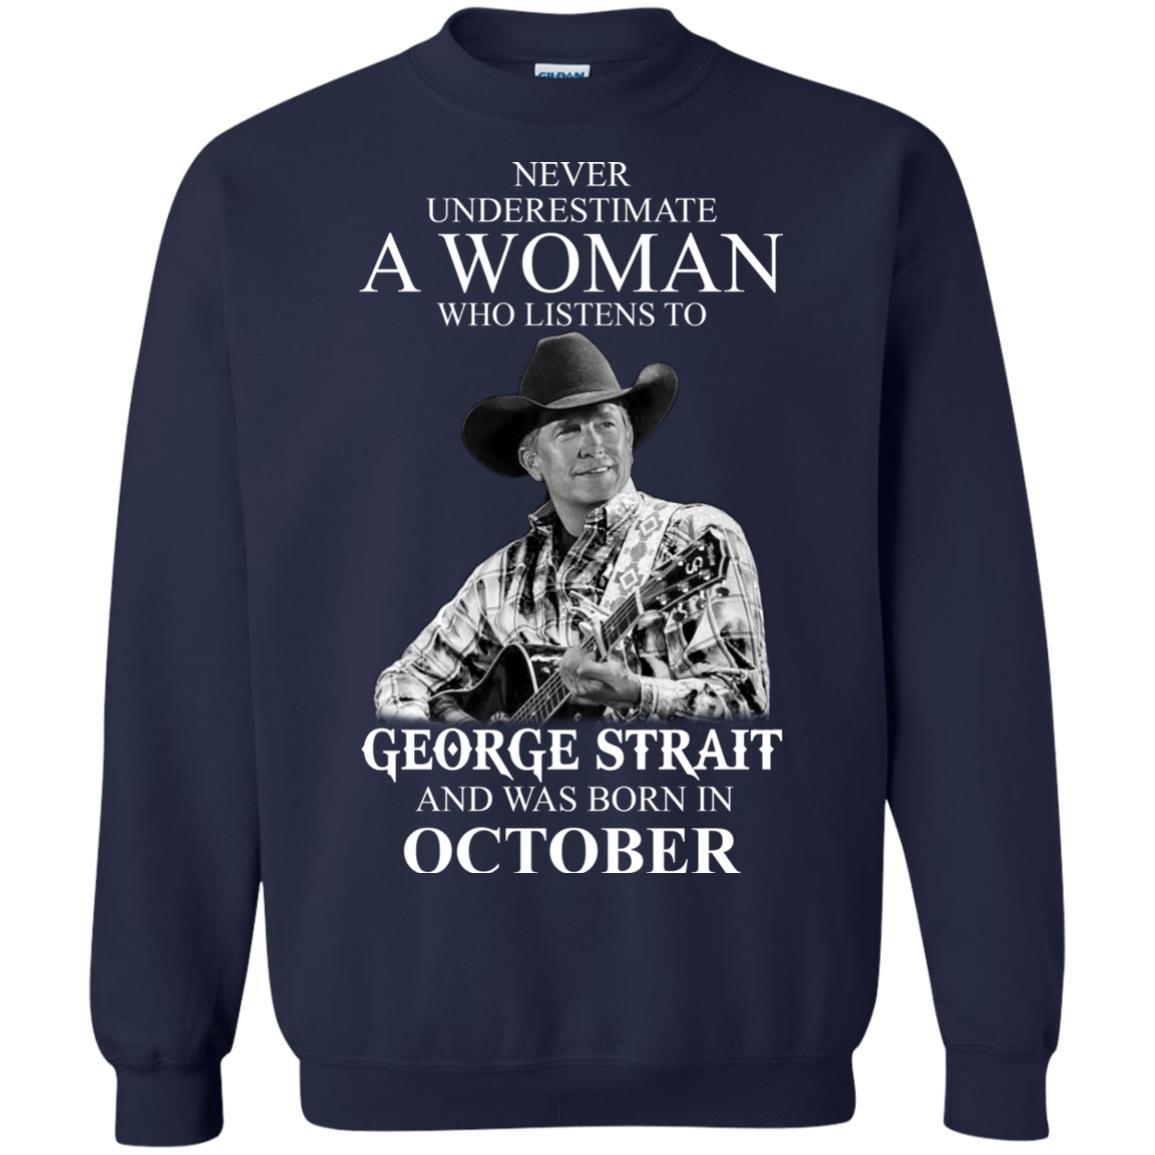 image 369 - Never Underestimate A Woman Who Listens To George Strait And Was Born In October shirt